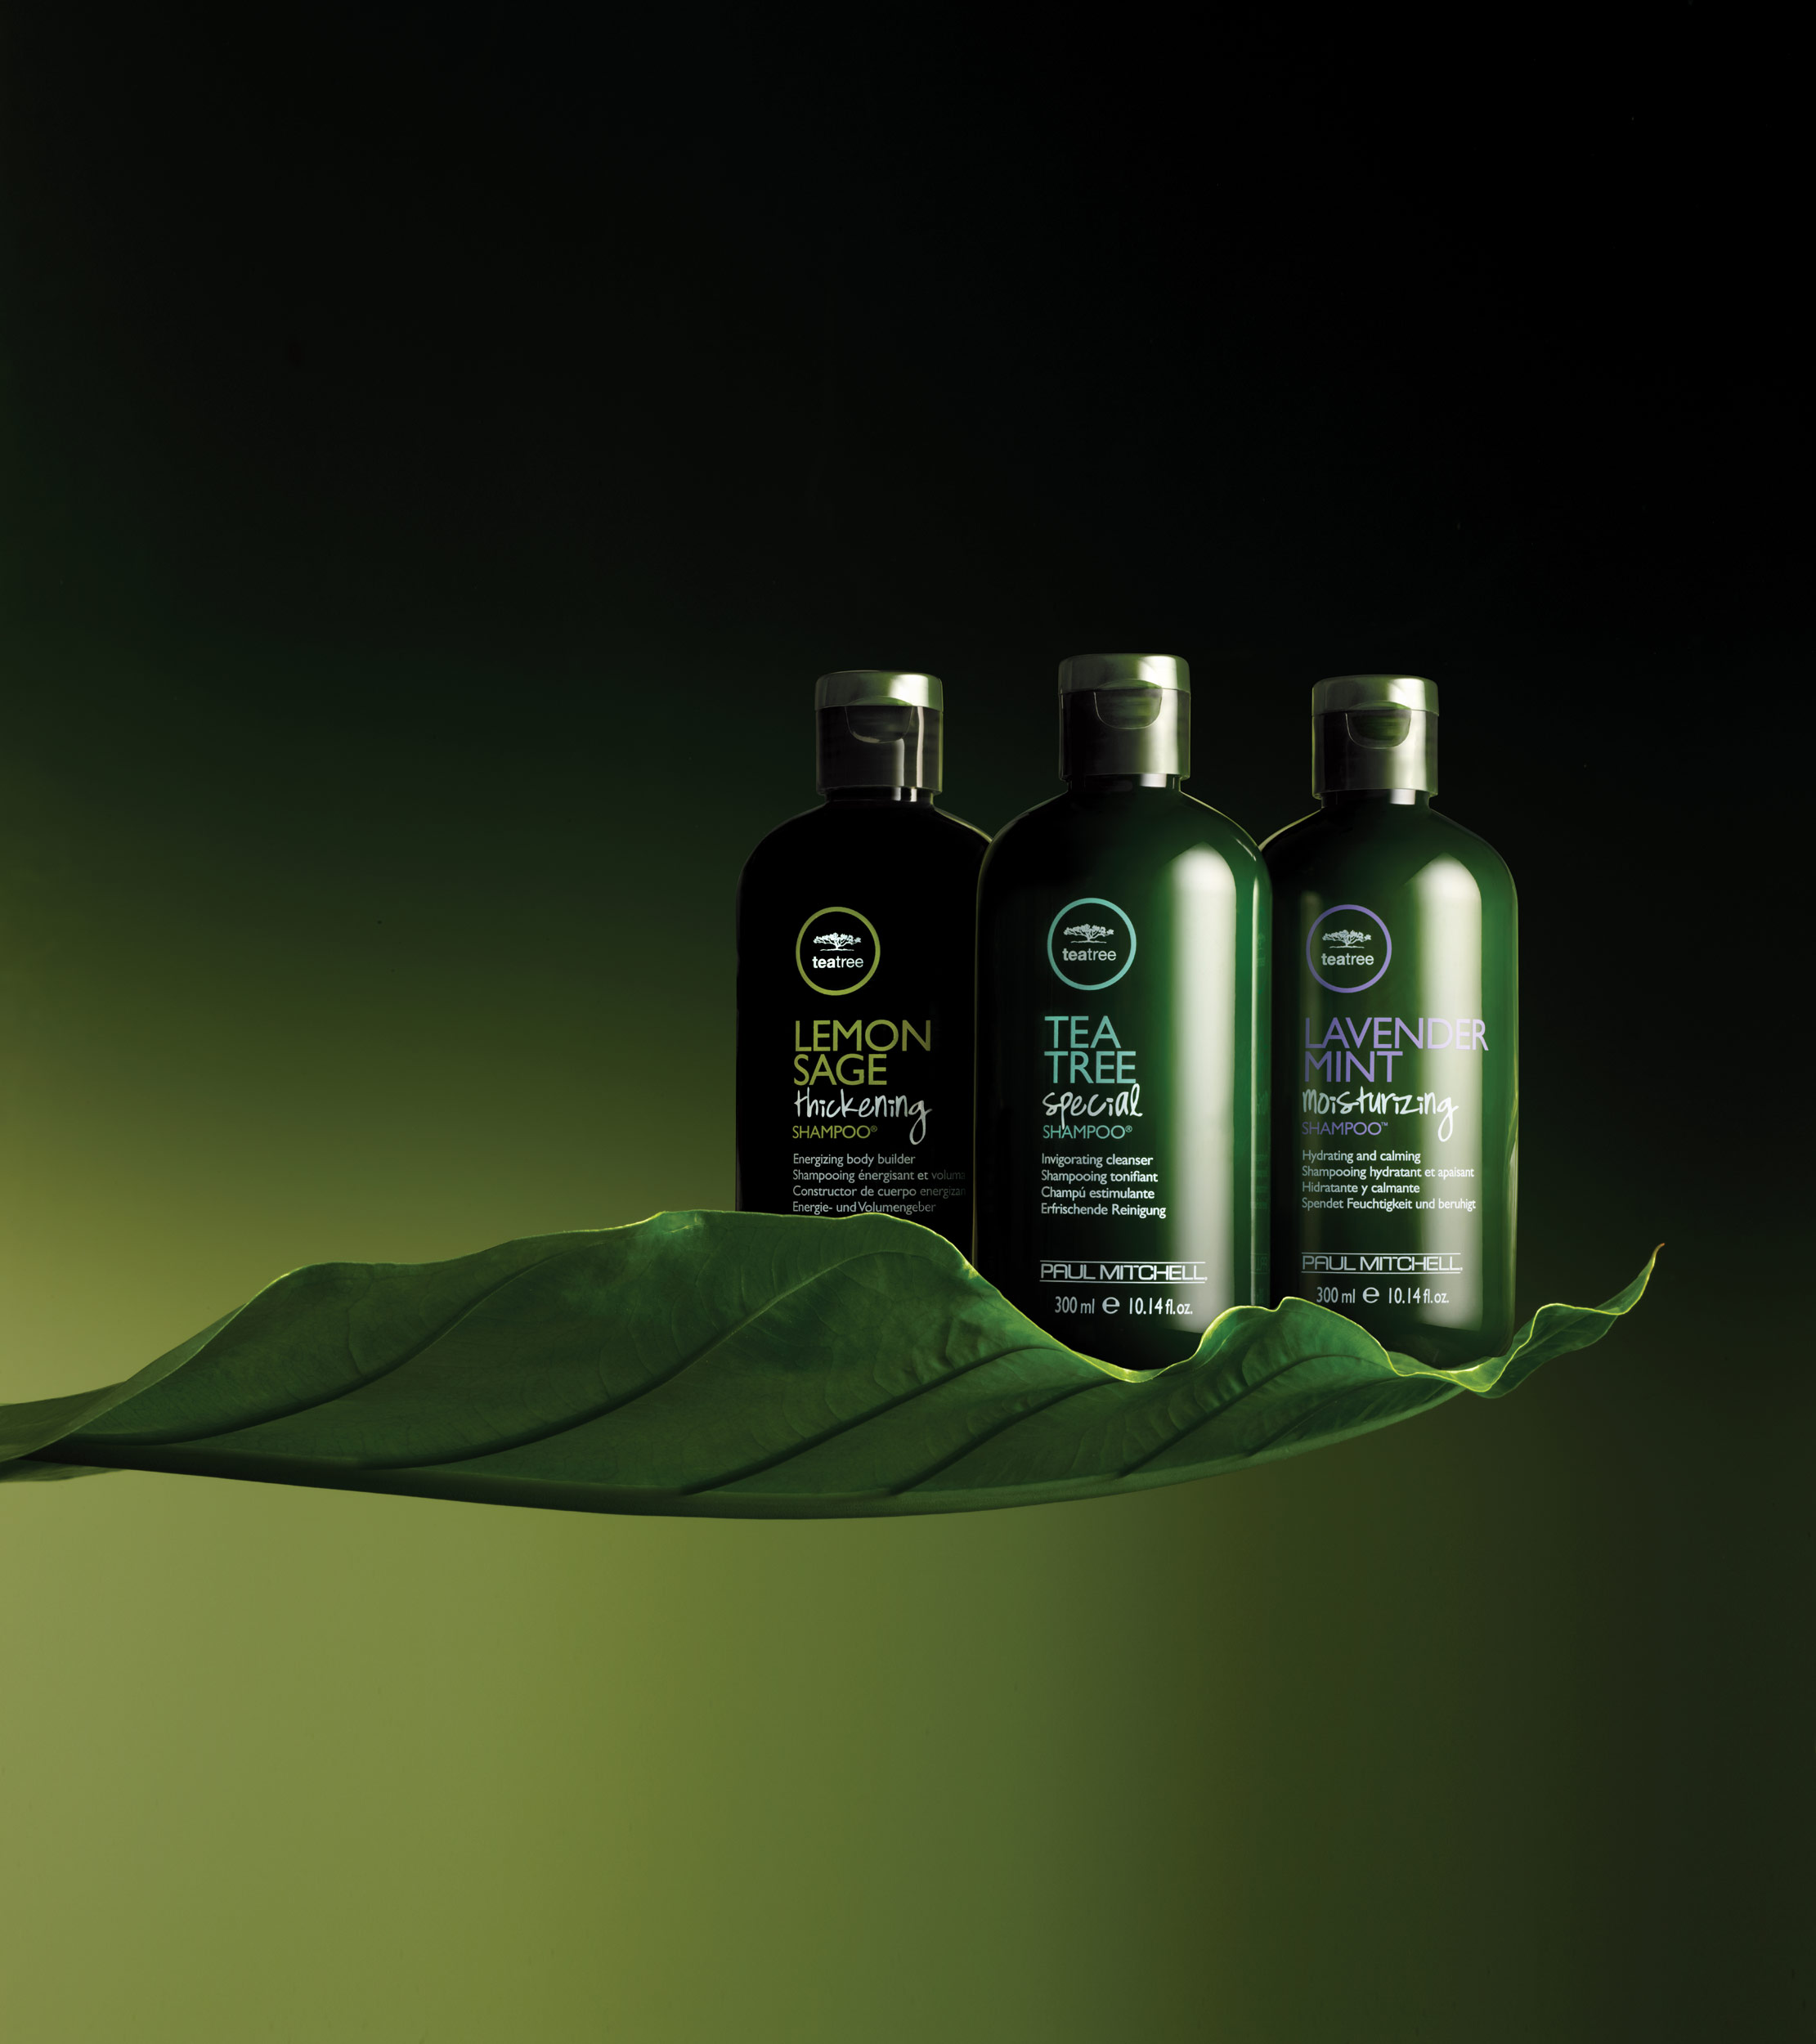 Tea Tree Scalp Care is a preventative system that gently and naturally helps slow down the process of hair thinning due to breakage.